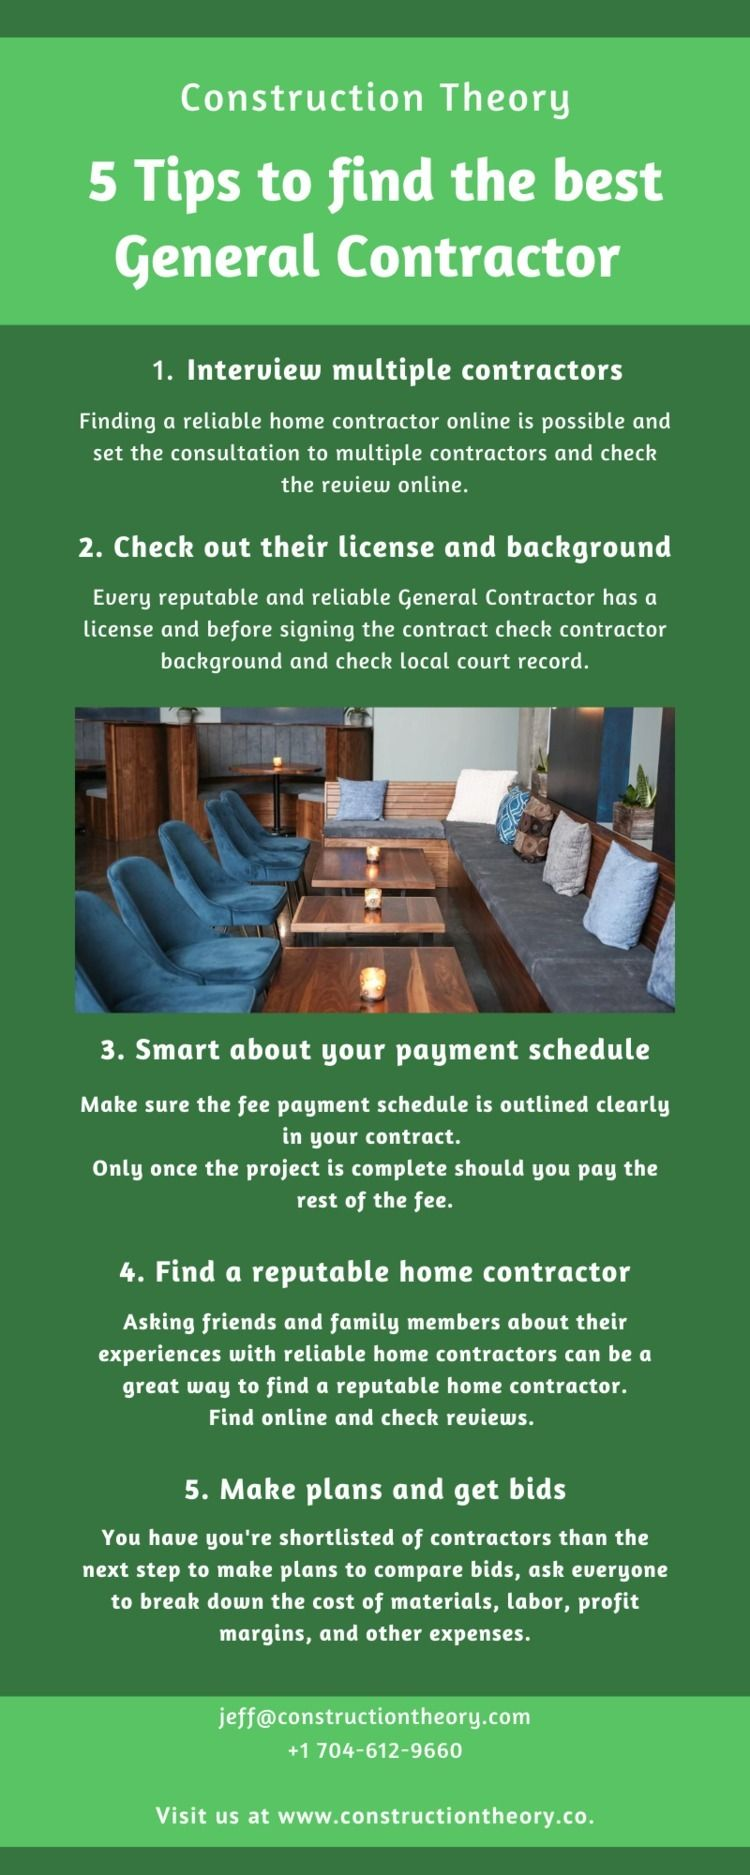 5 Tips find General Contractor  - constructiontheoryus | ello